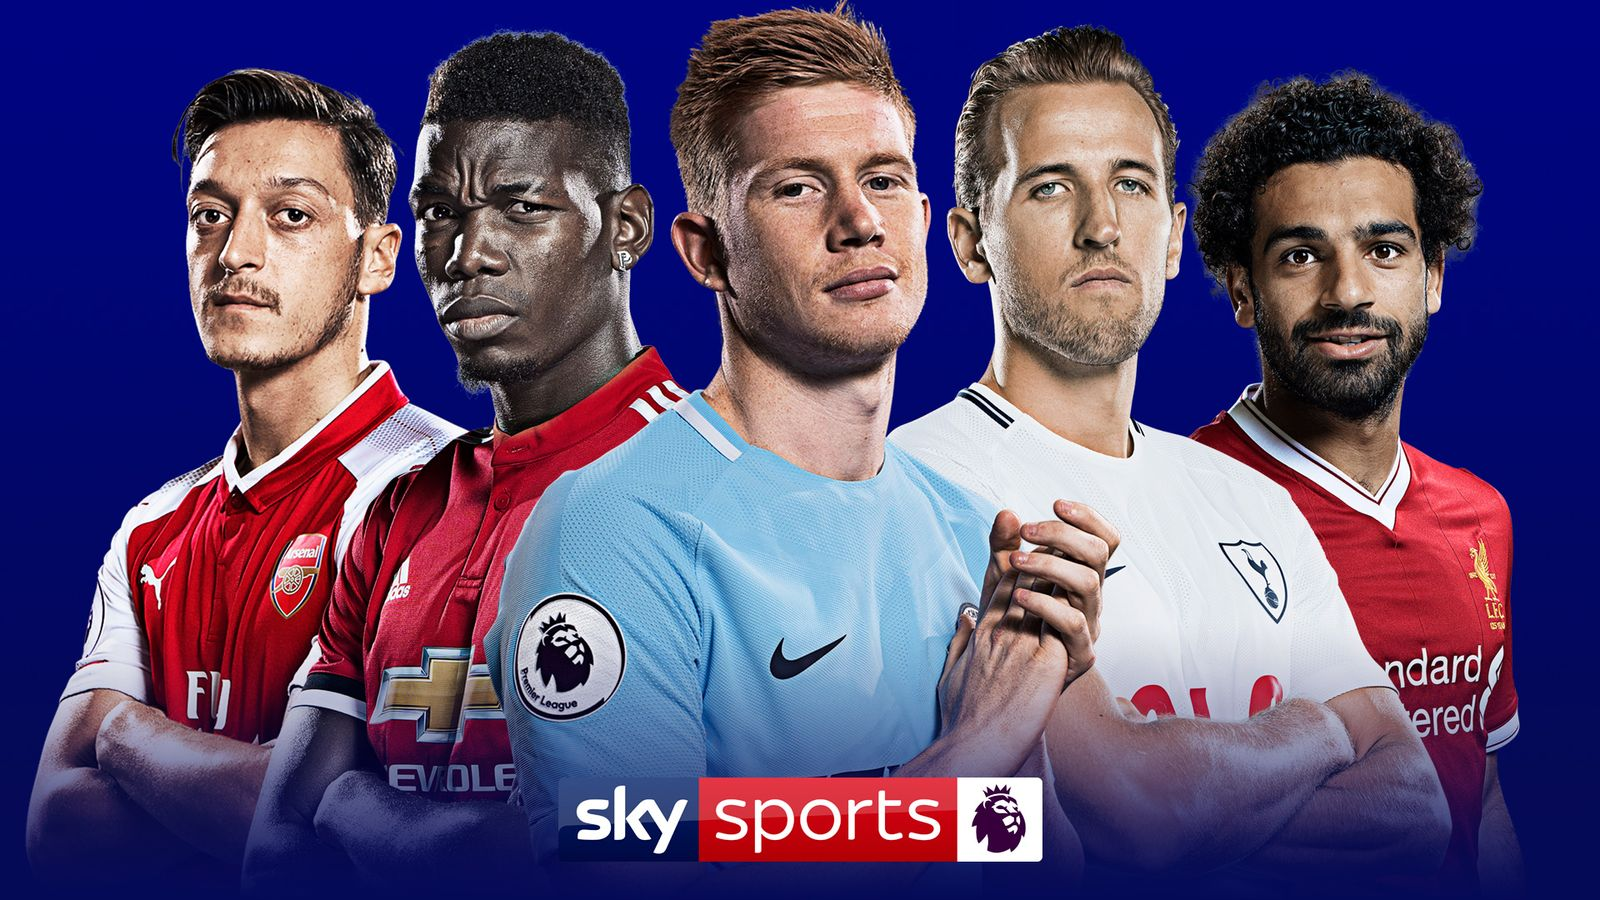 premier league sky football sports manchester fixtures united skysports season fixture